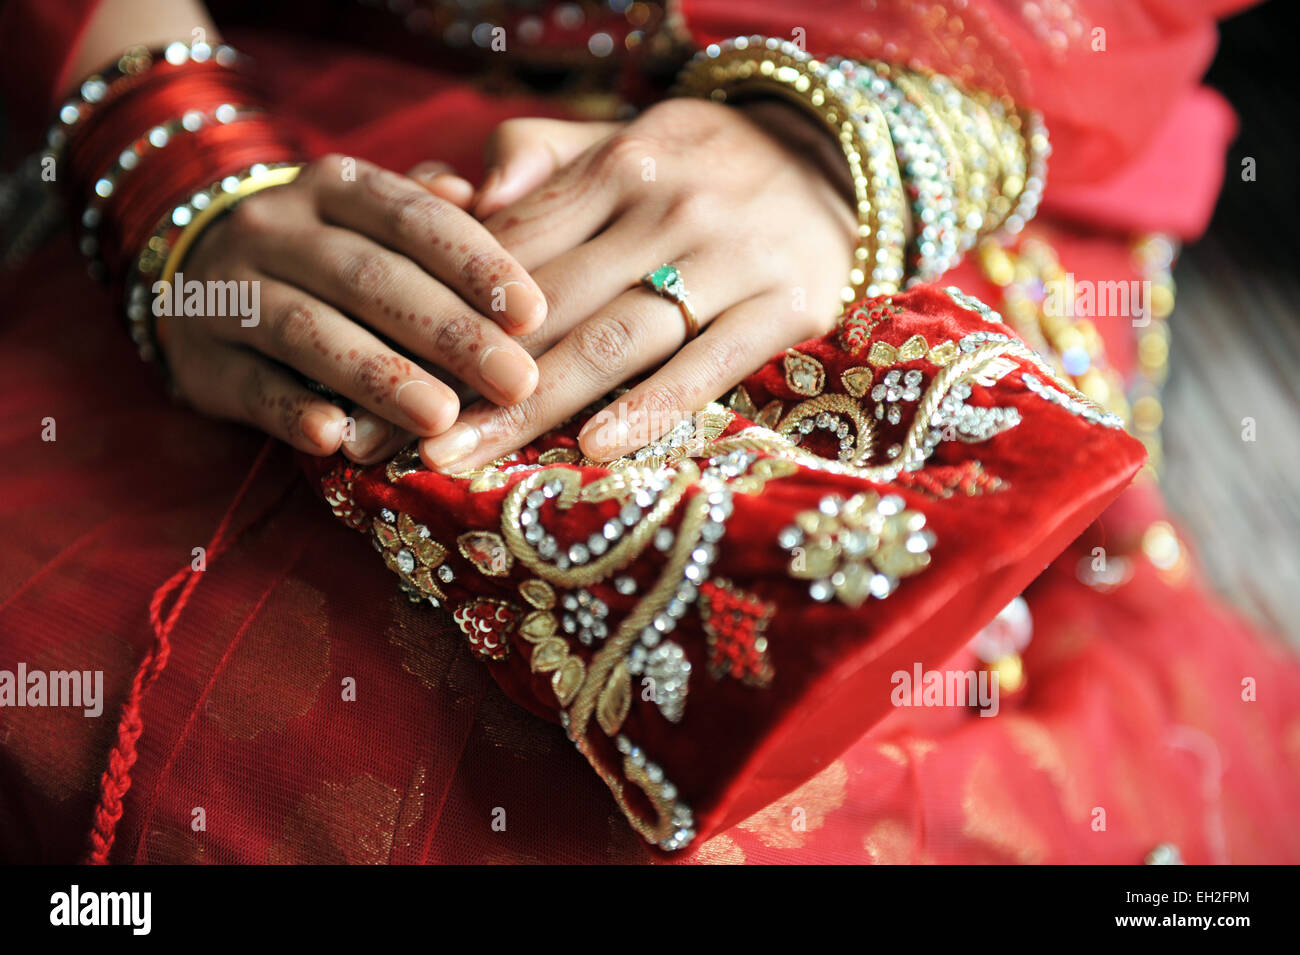 Bride ready on her wedding day, wtih henna and traditional dress. - Stock Image